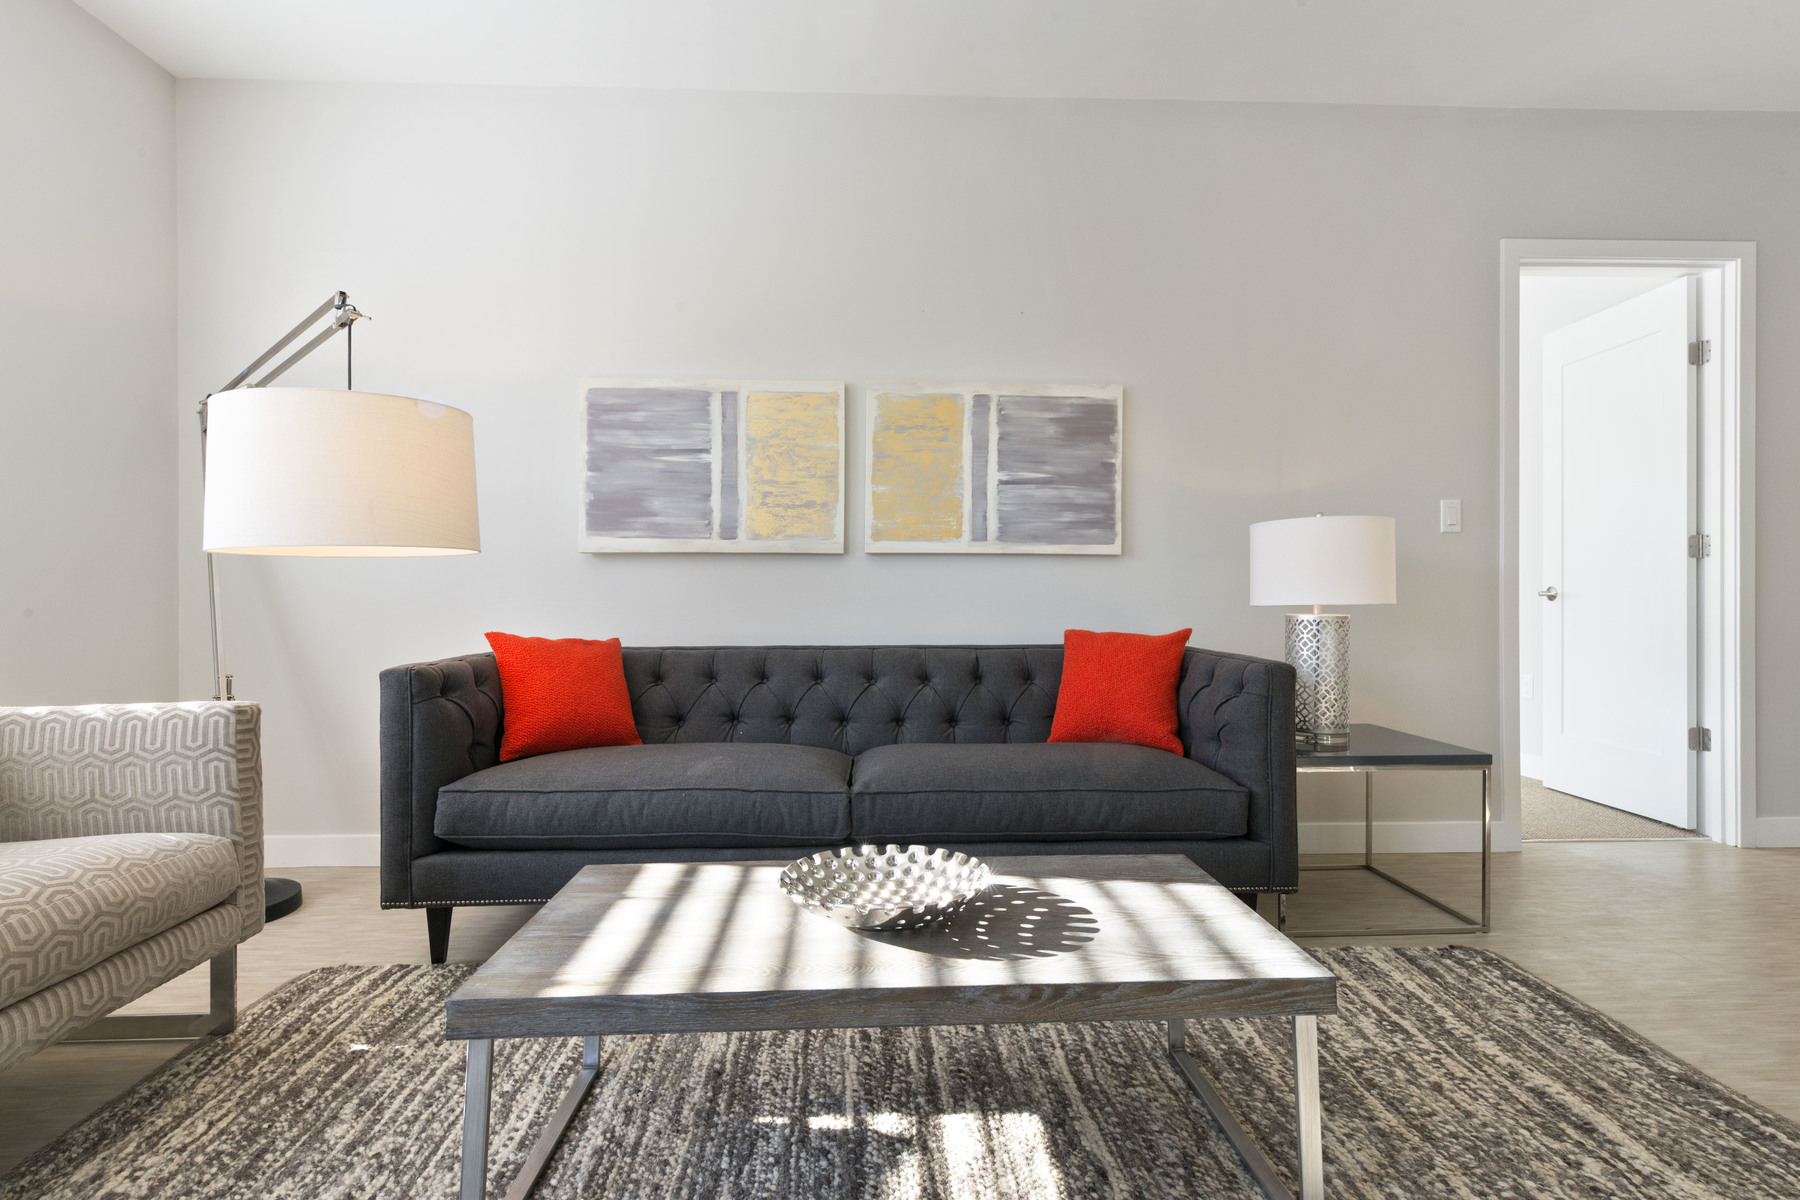 Condominium for Sale at Brookside at 999 Hancock 999 Hancock Street - Unit 502 Other Areas, Massachusetts QUINC United States